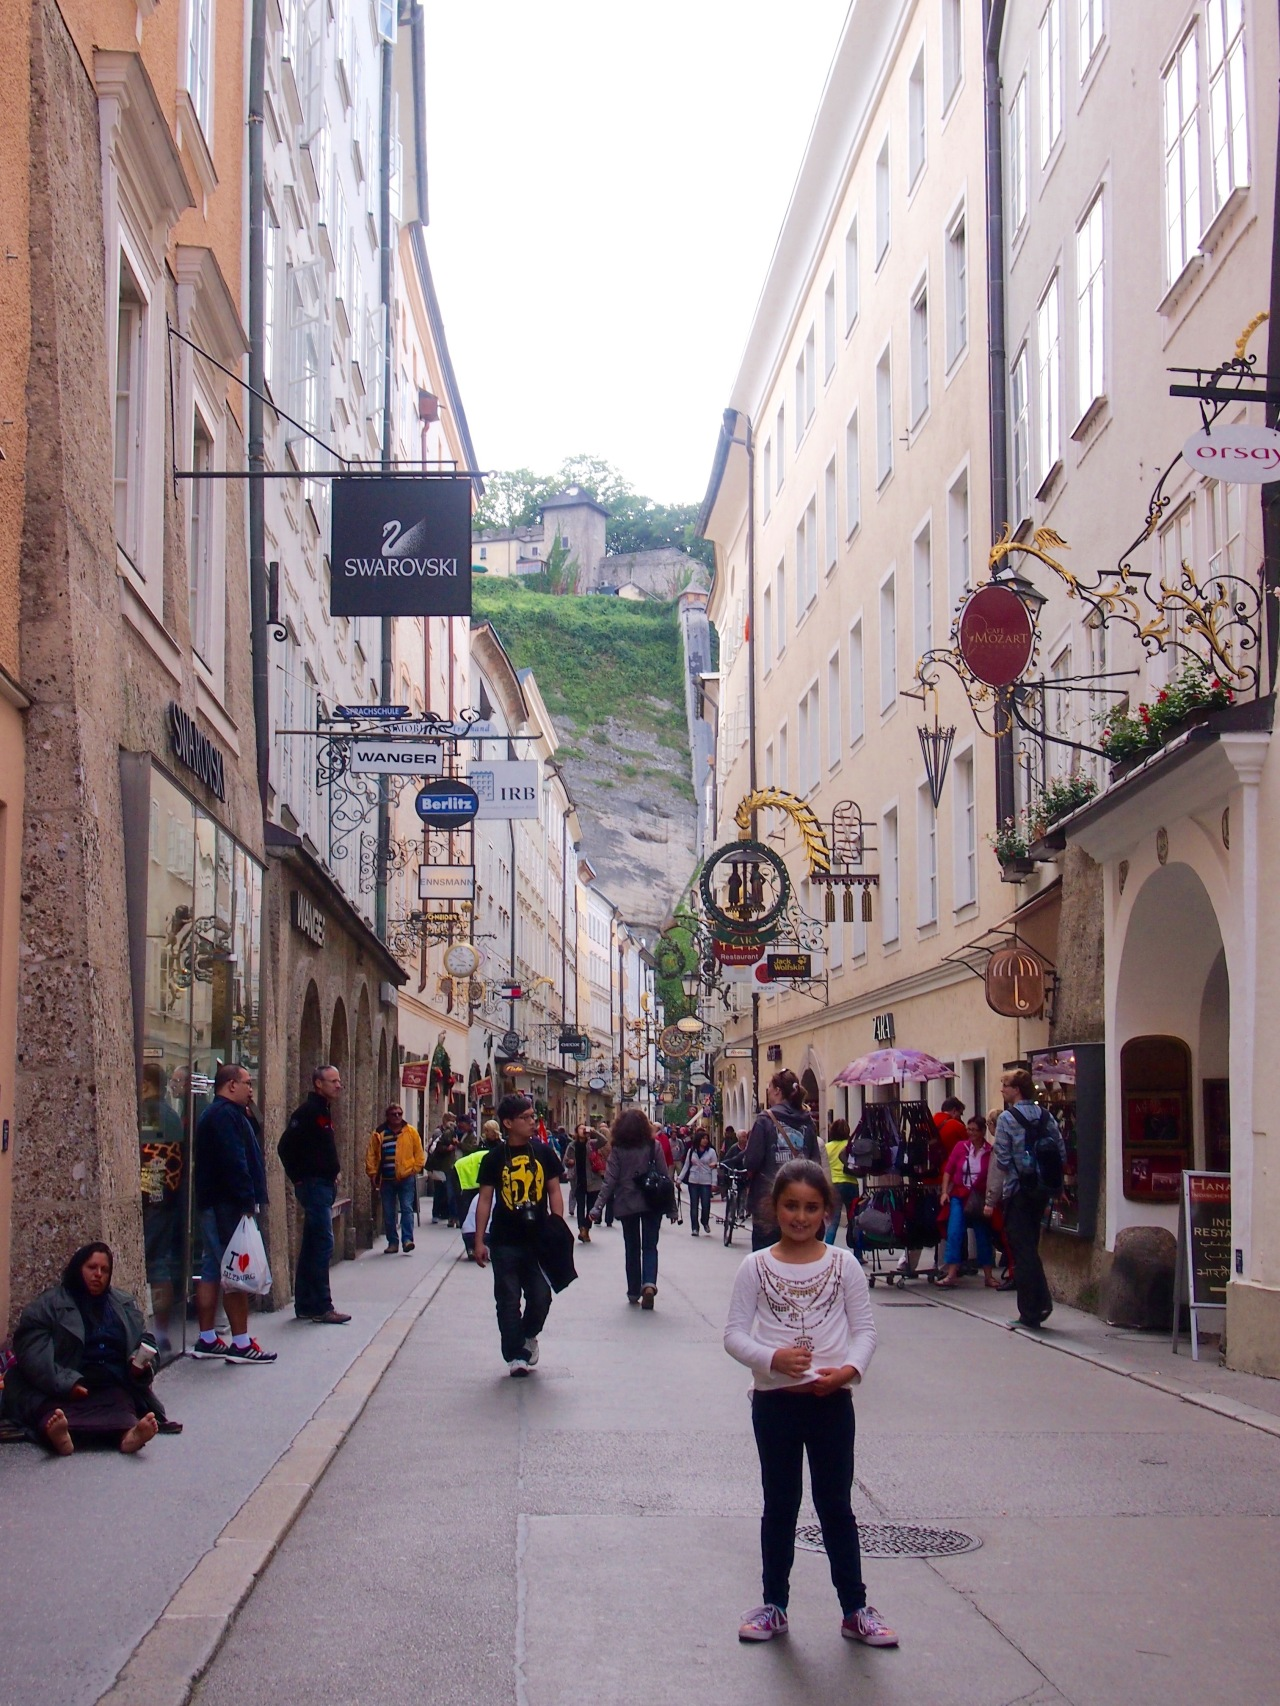 Austria – A day in the Old Town ofSalzburg